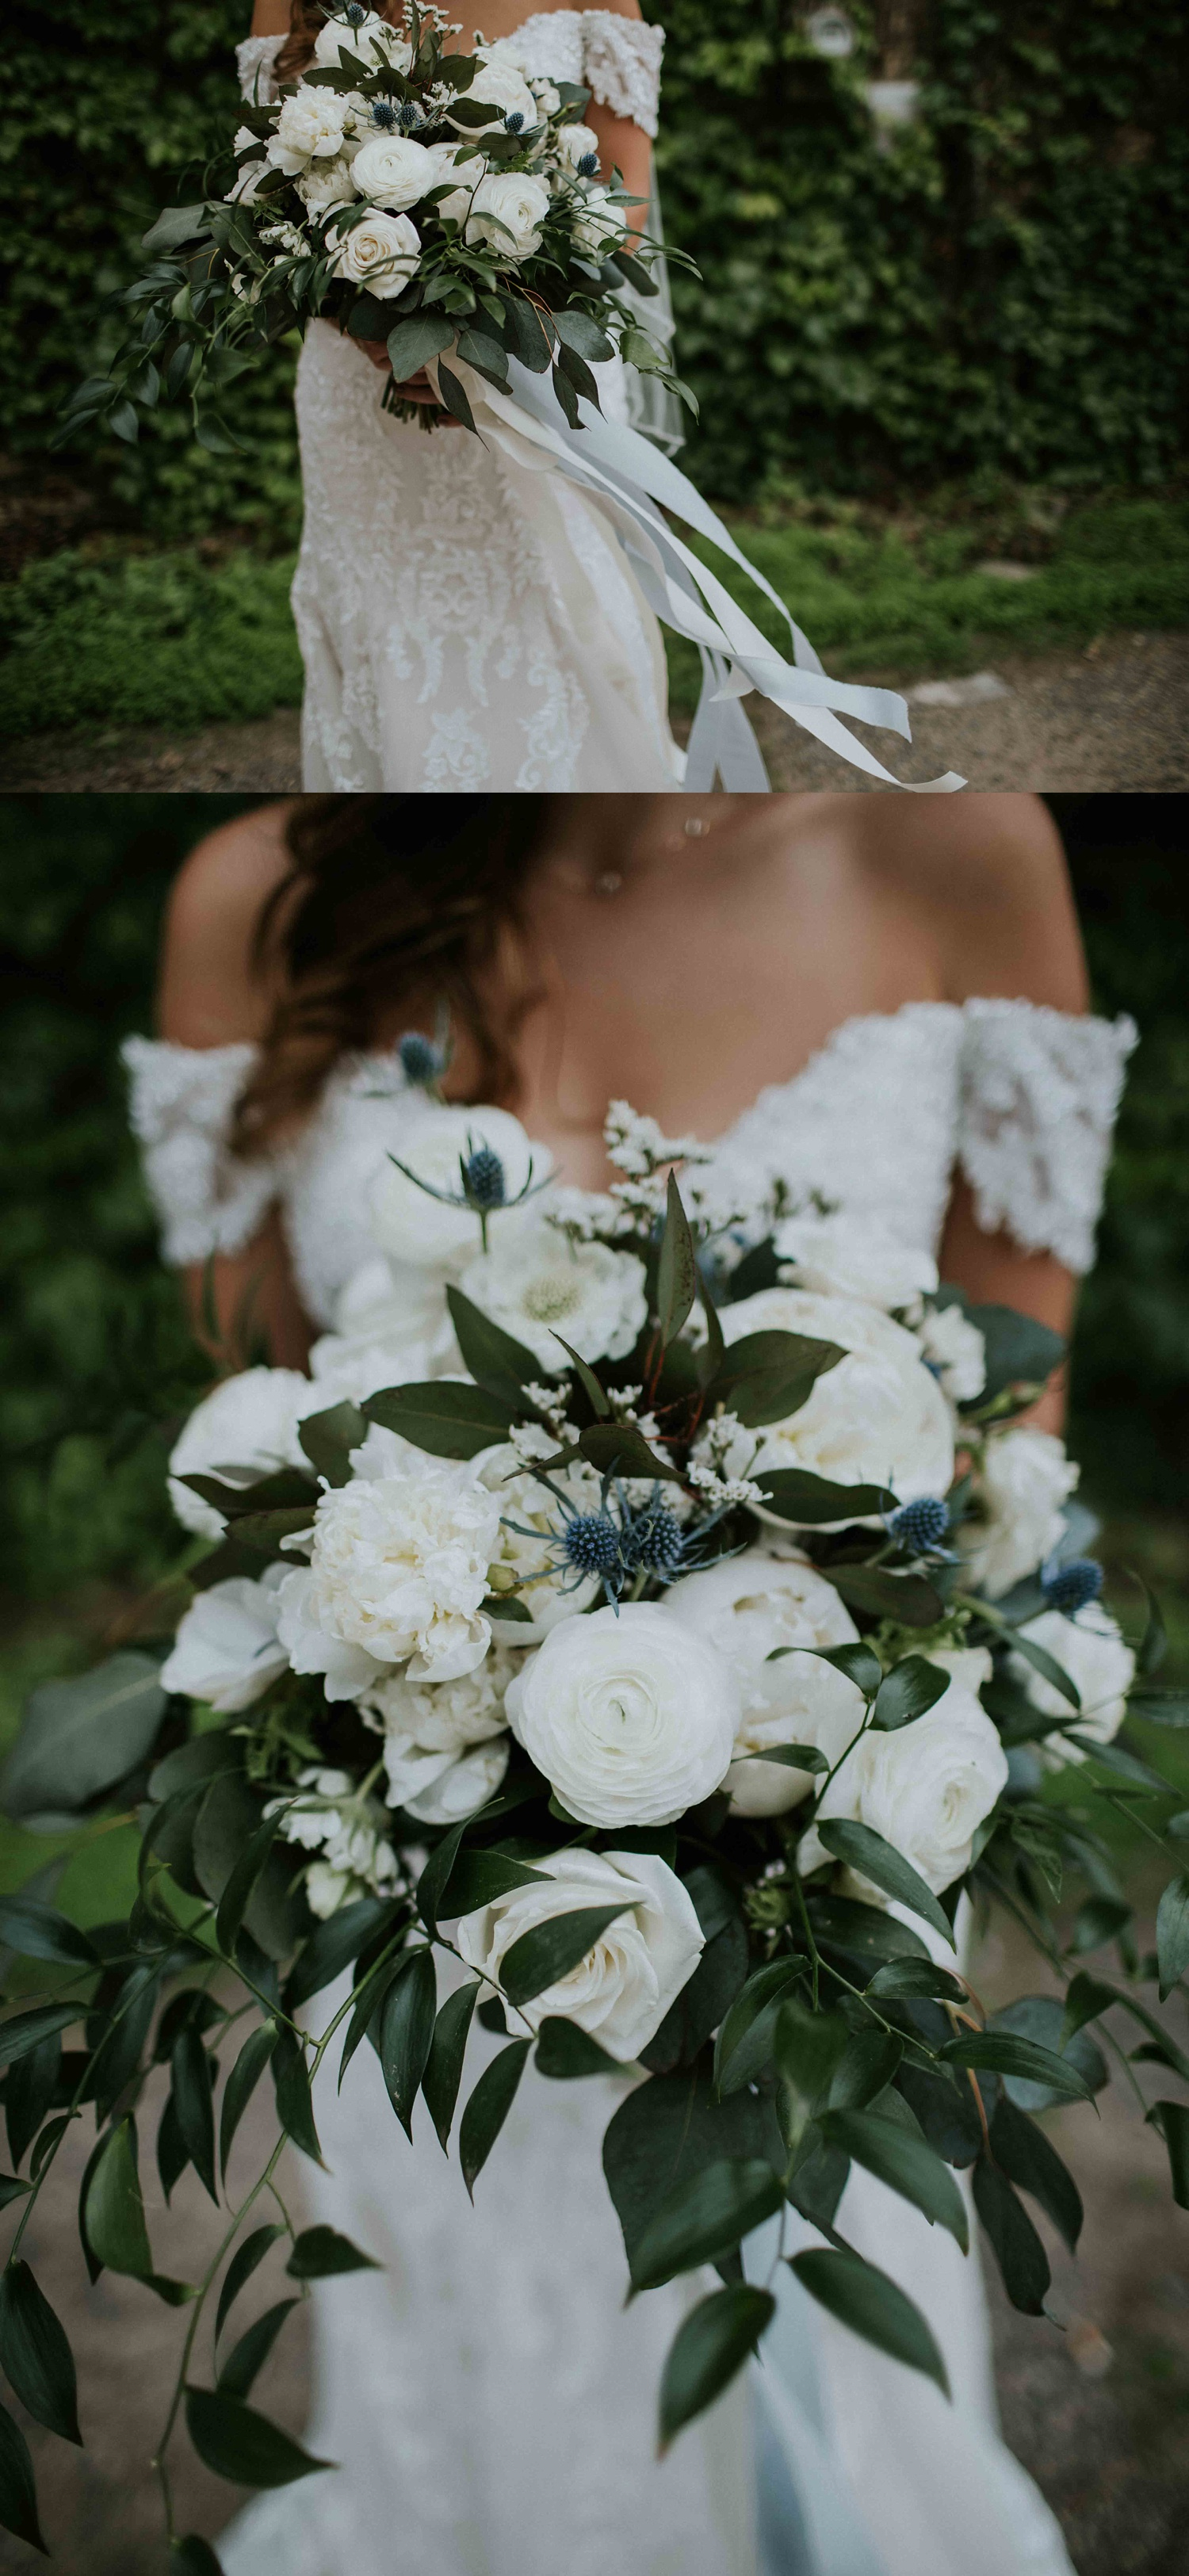 Bulls Eye Country Club Wedding Photographer Wisconsin Rapids Chloe Ann Photography_0011.jpg